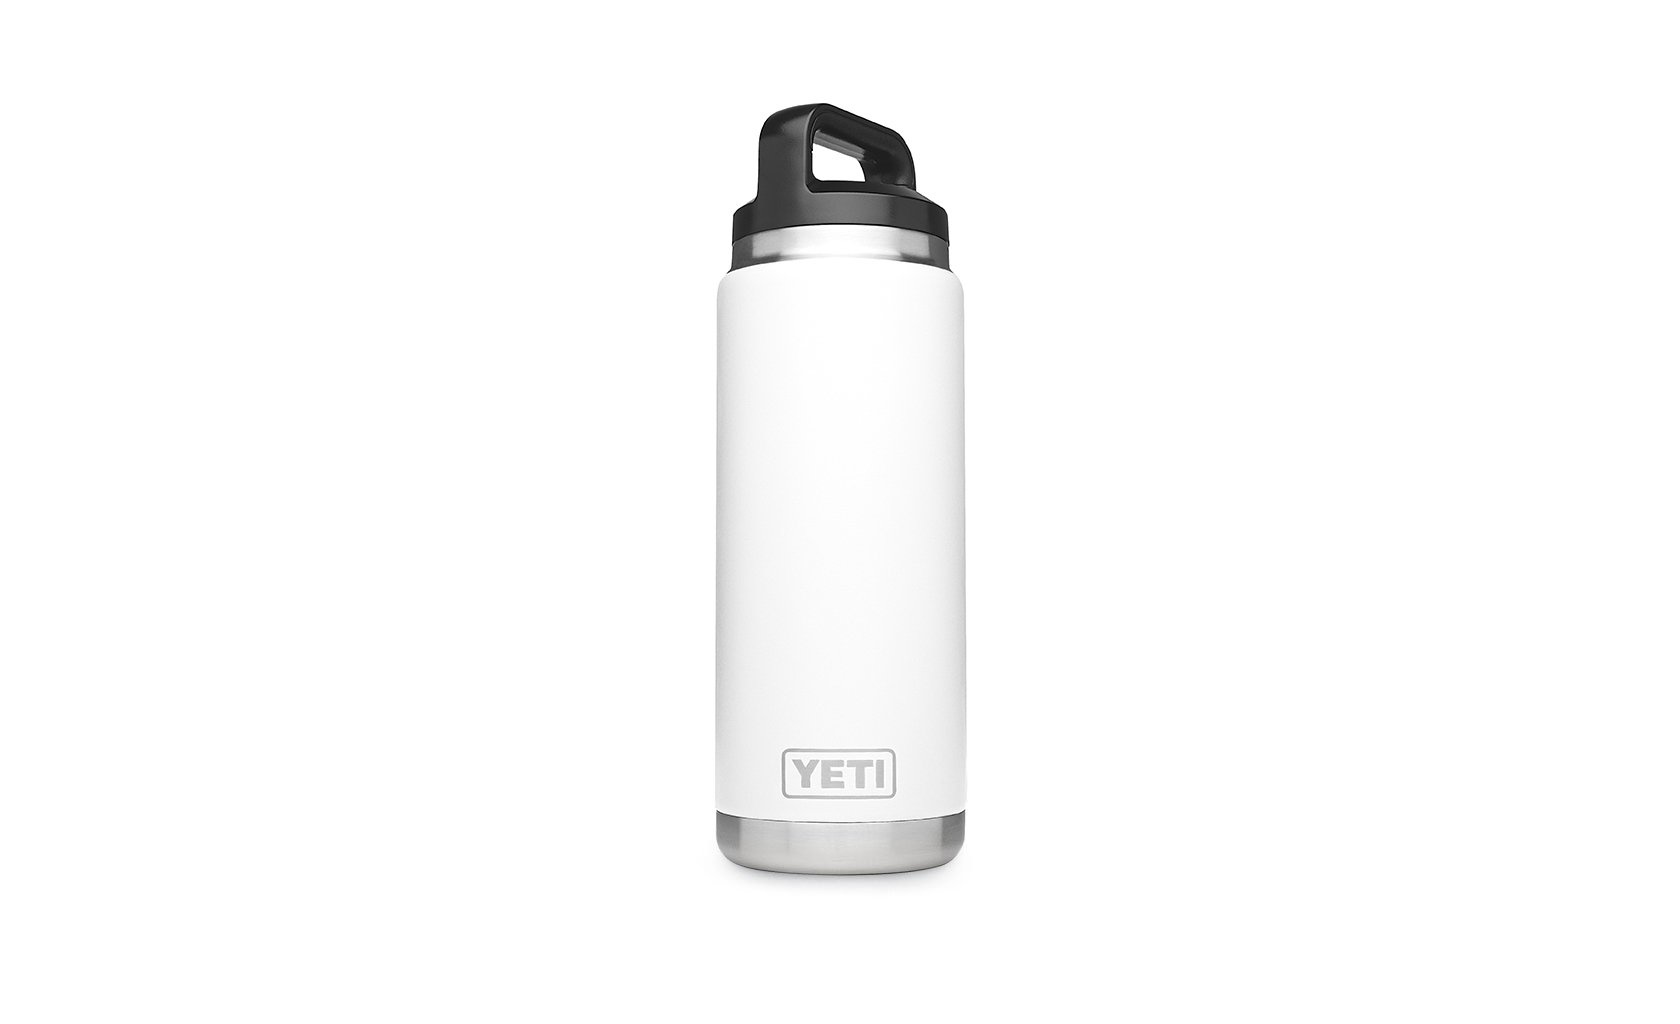 YETI YETI Rambler 26 Oz White Bottle (769ML)